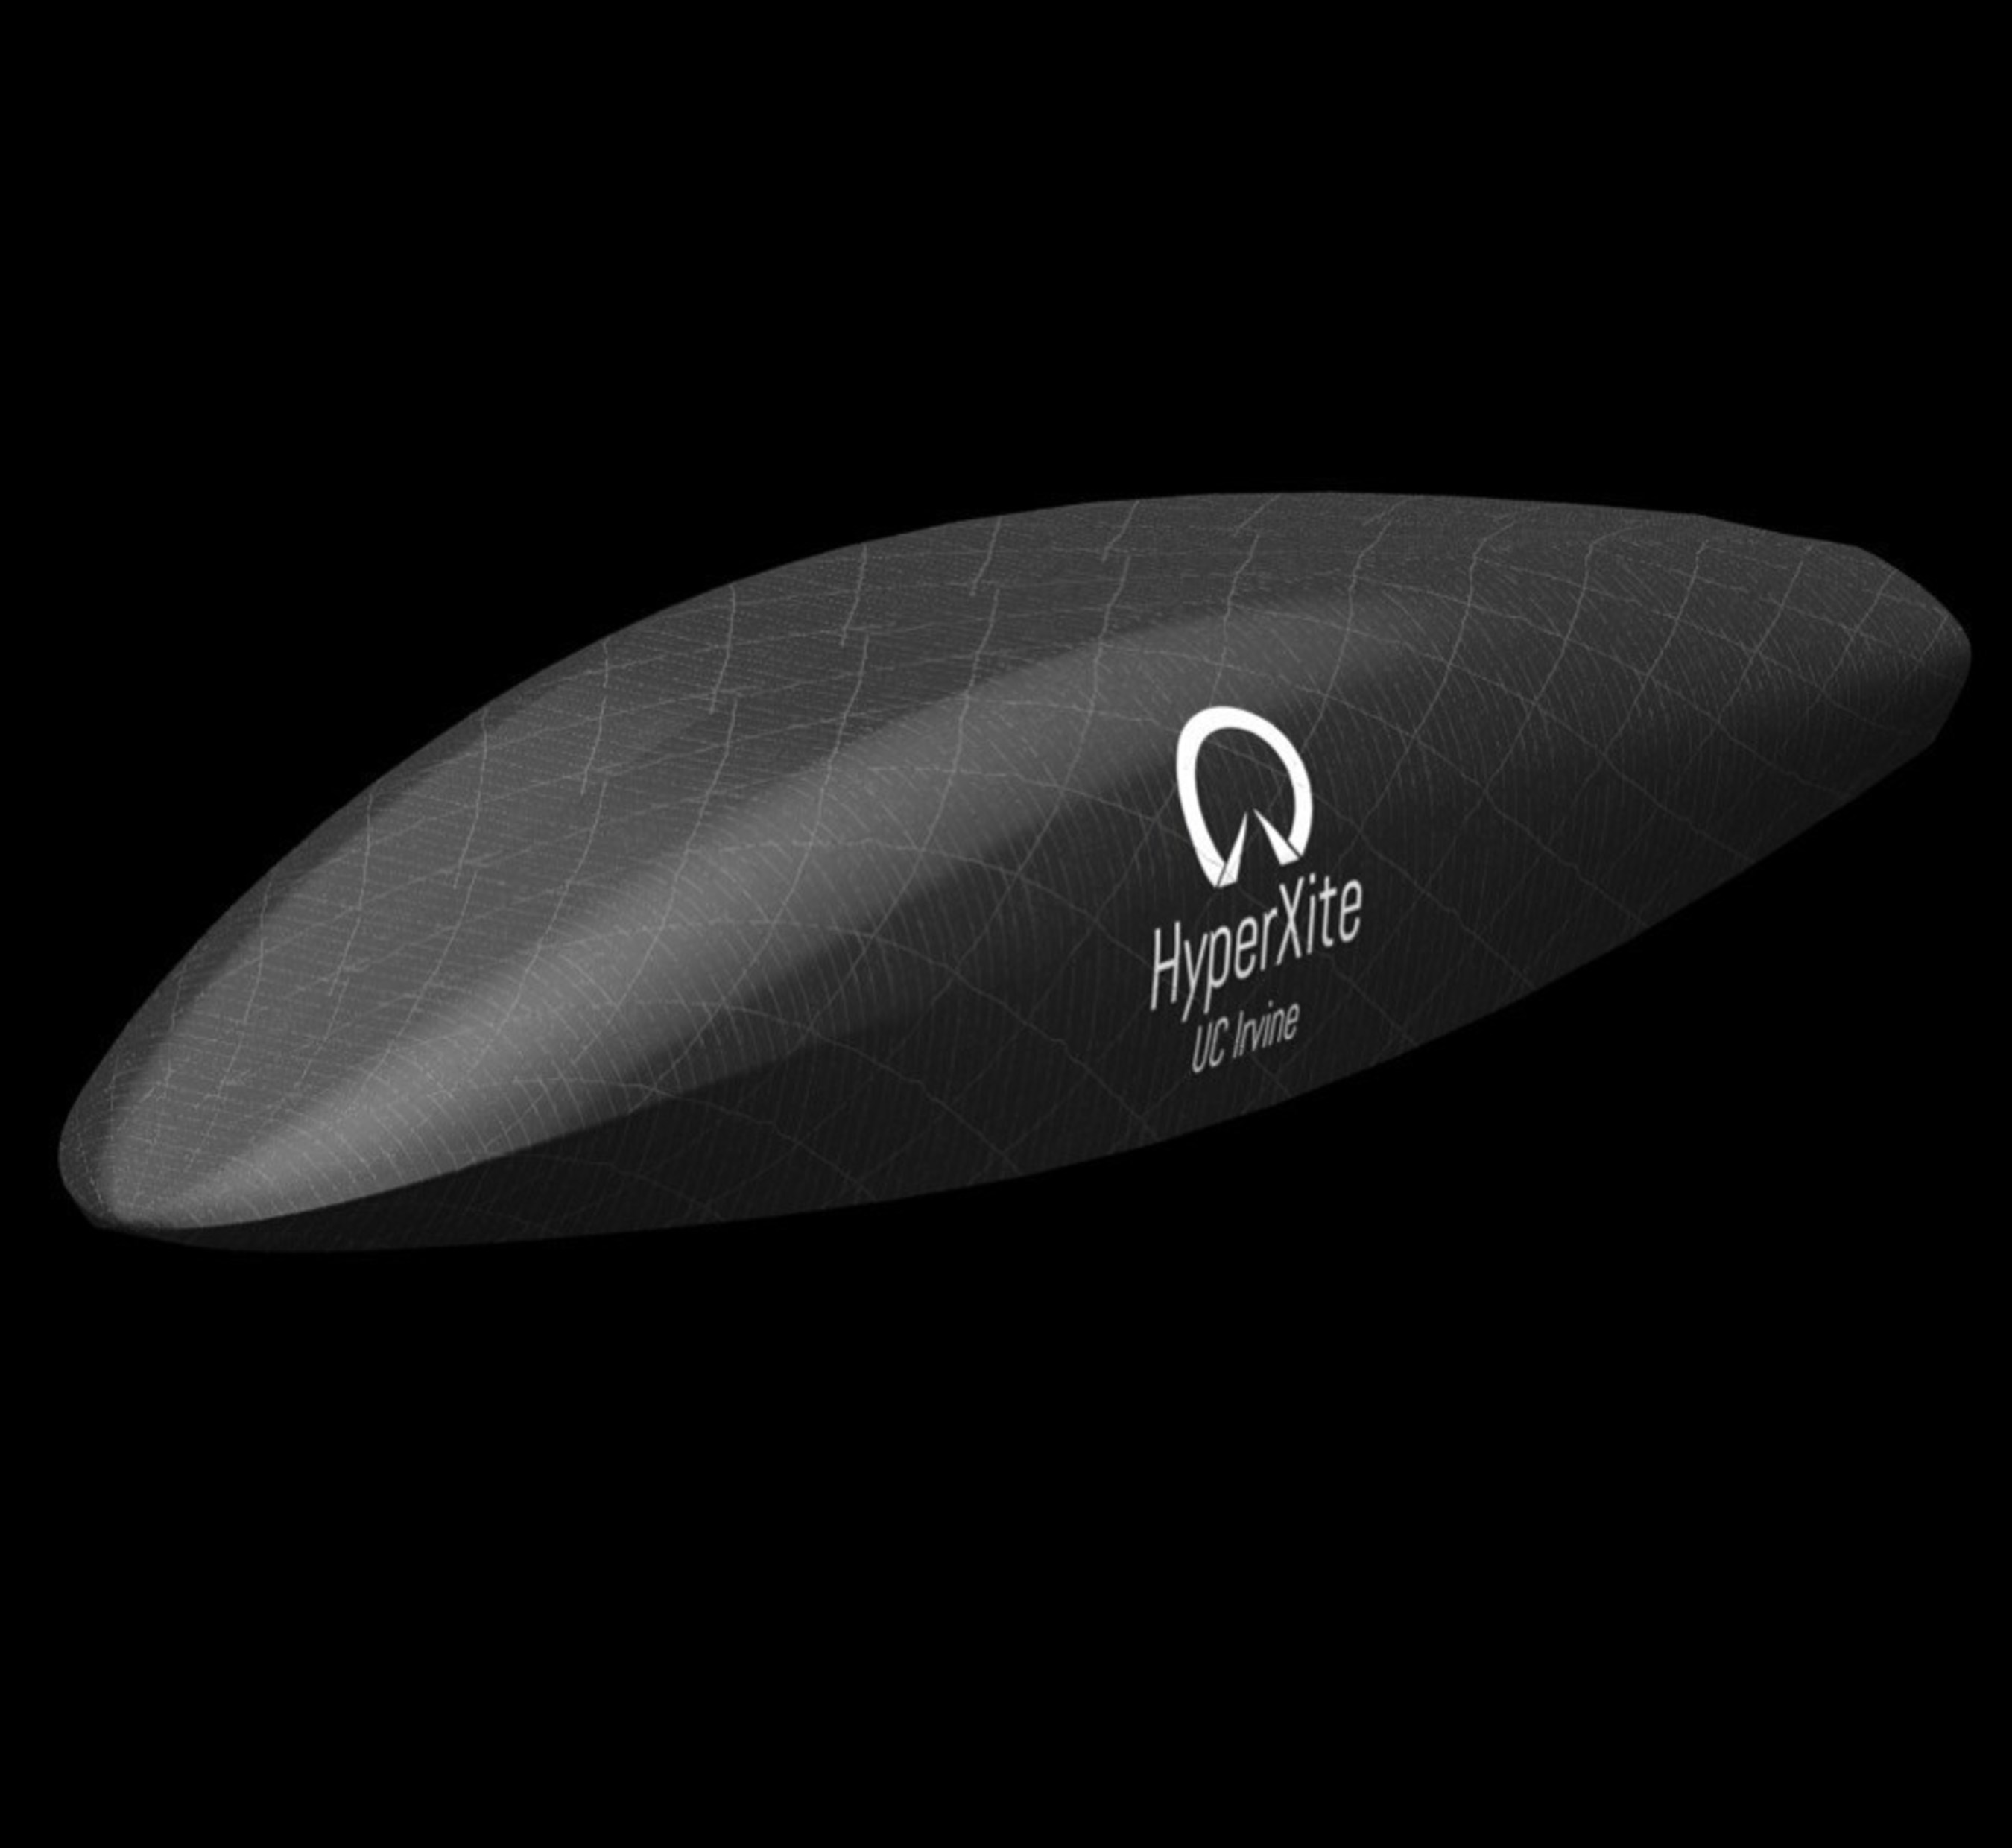 Isometric view of the HyperXite pod design used for ANSYS simulation by the University of California, Irvine Hyperloop HyperXite team